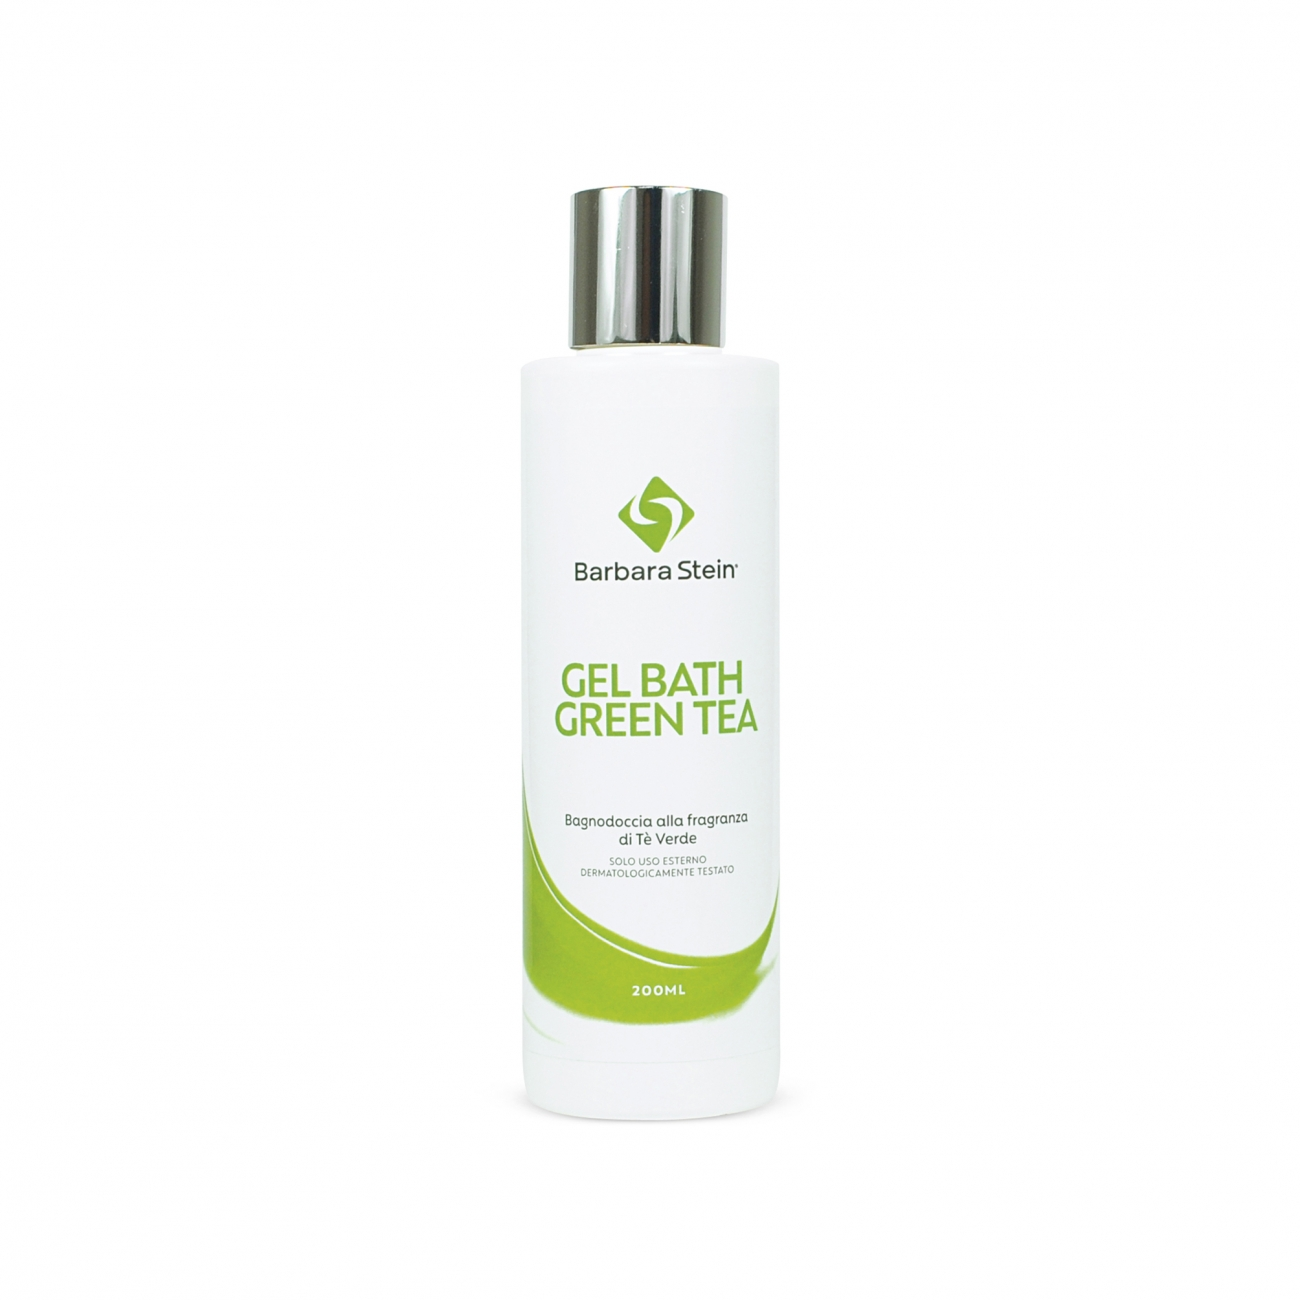 GEL BATH GREEN TEA (200 ml)